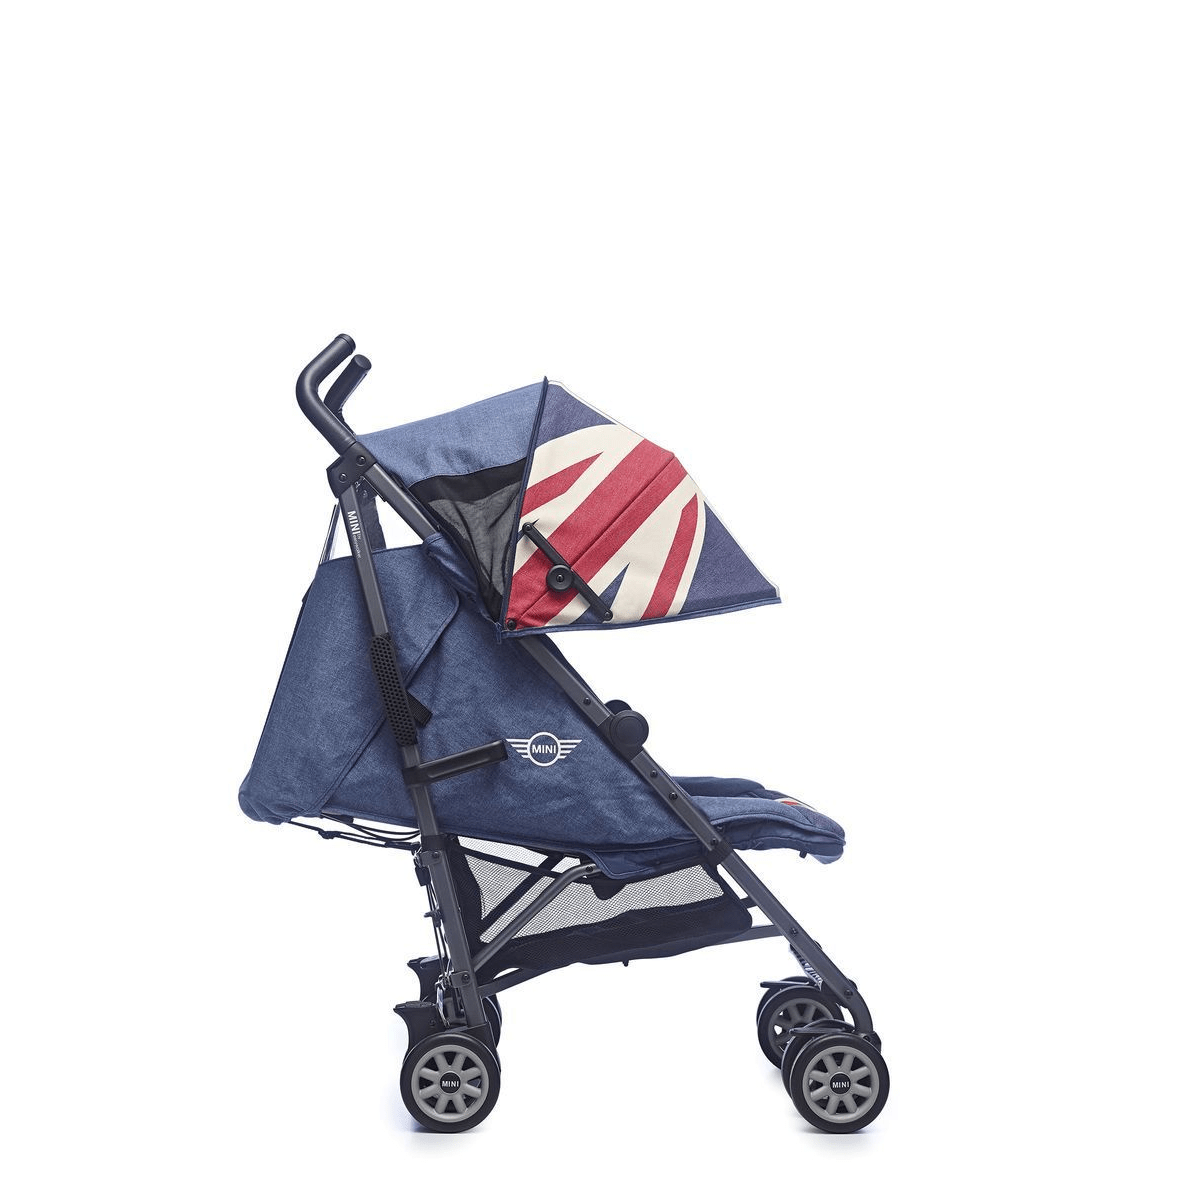 Silla De Paseo Mini Easywalker Mini Buggy